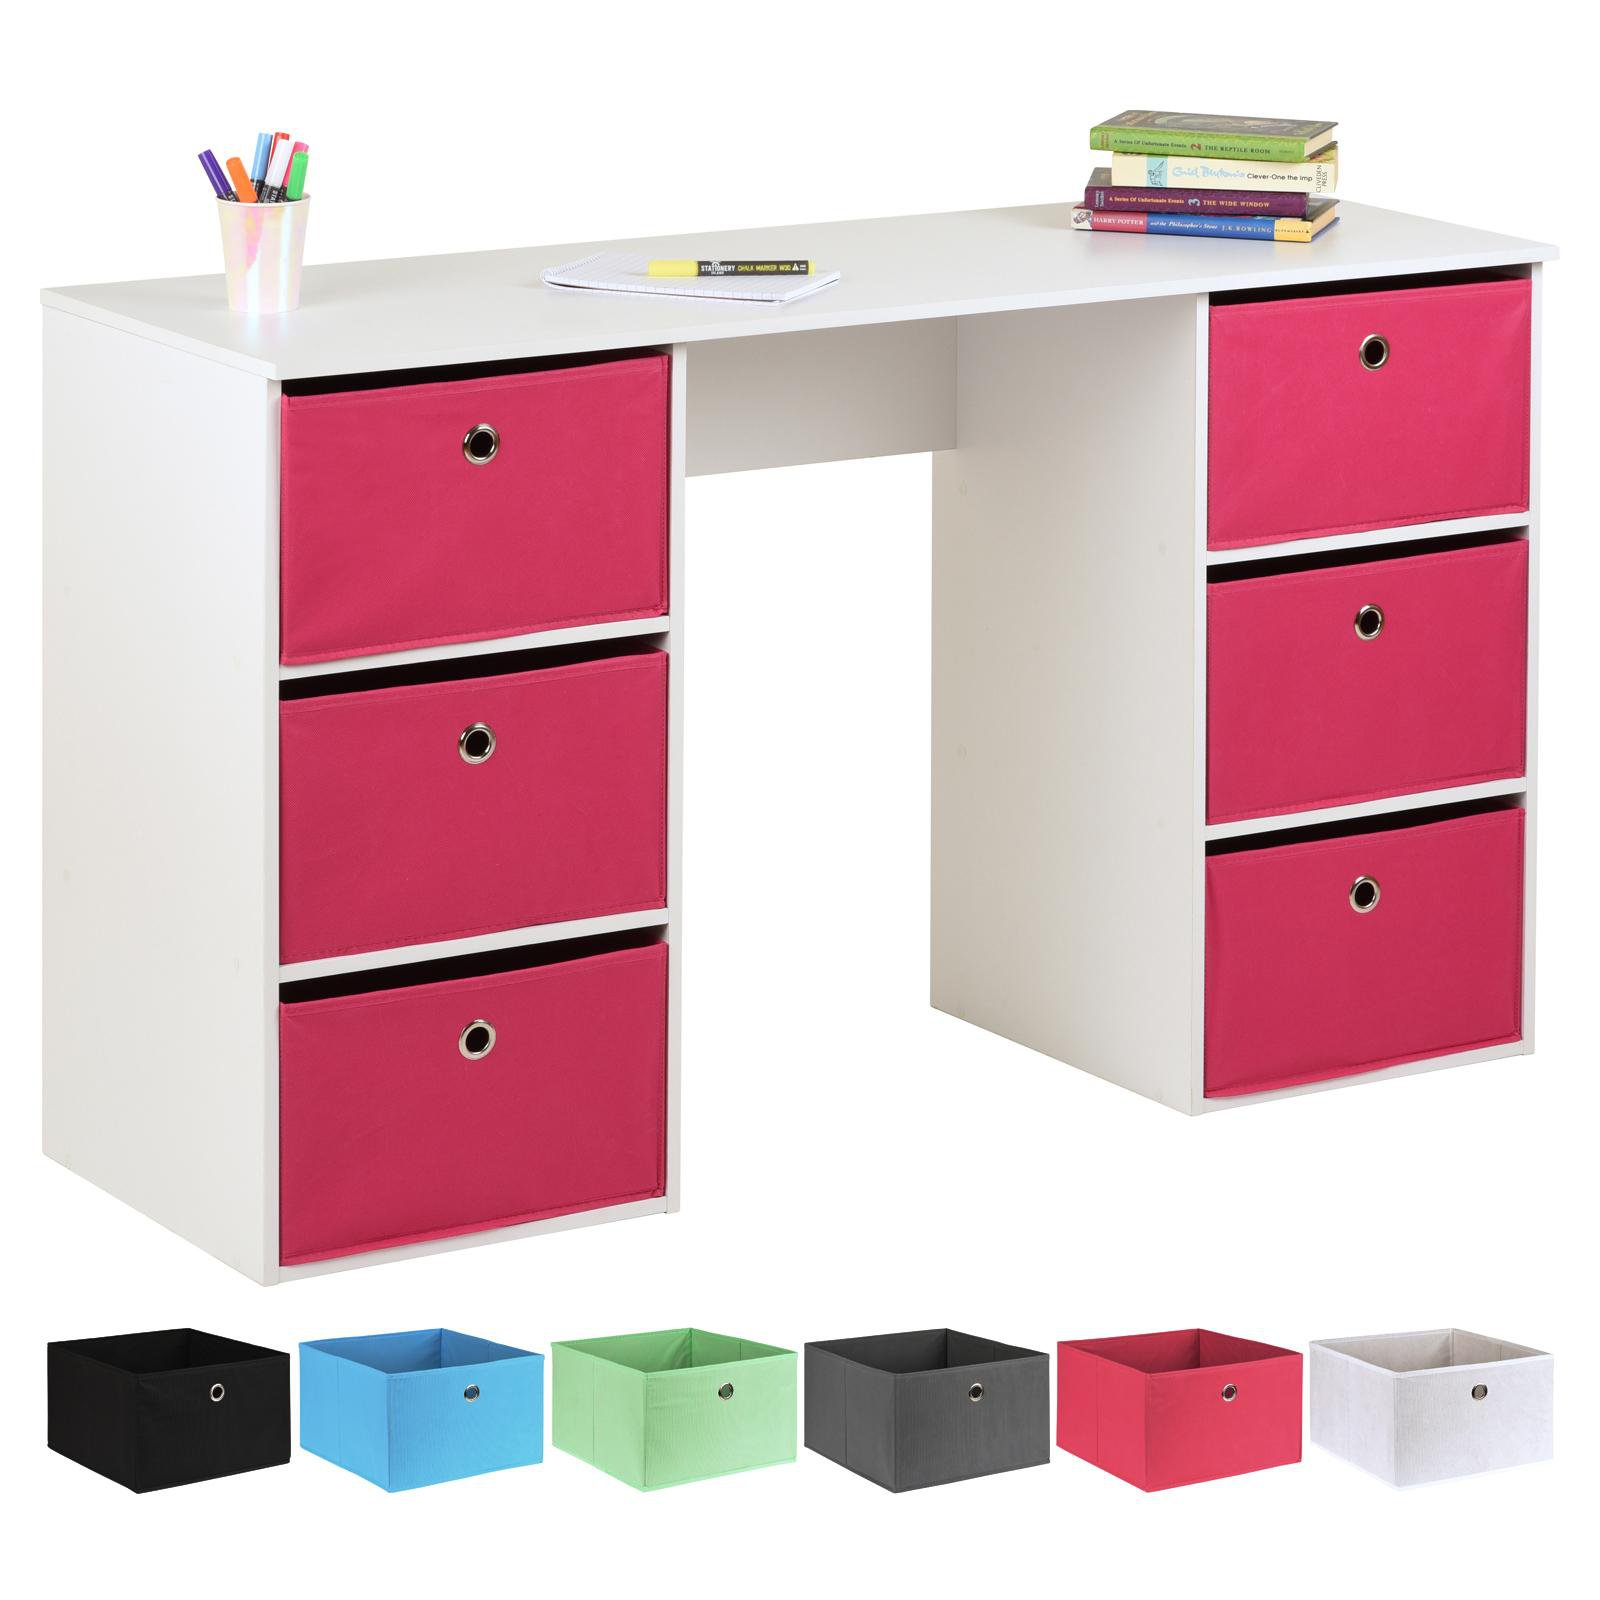 image-Hartleys Kids White Storage Desk & 6 Easy Grasp Box Drawers - Pink